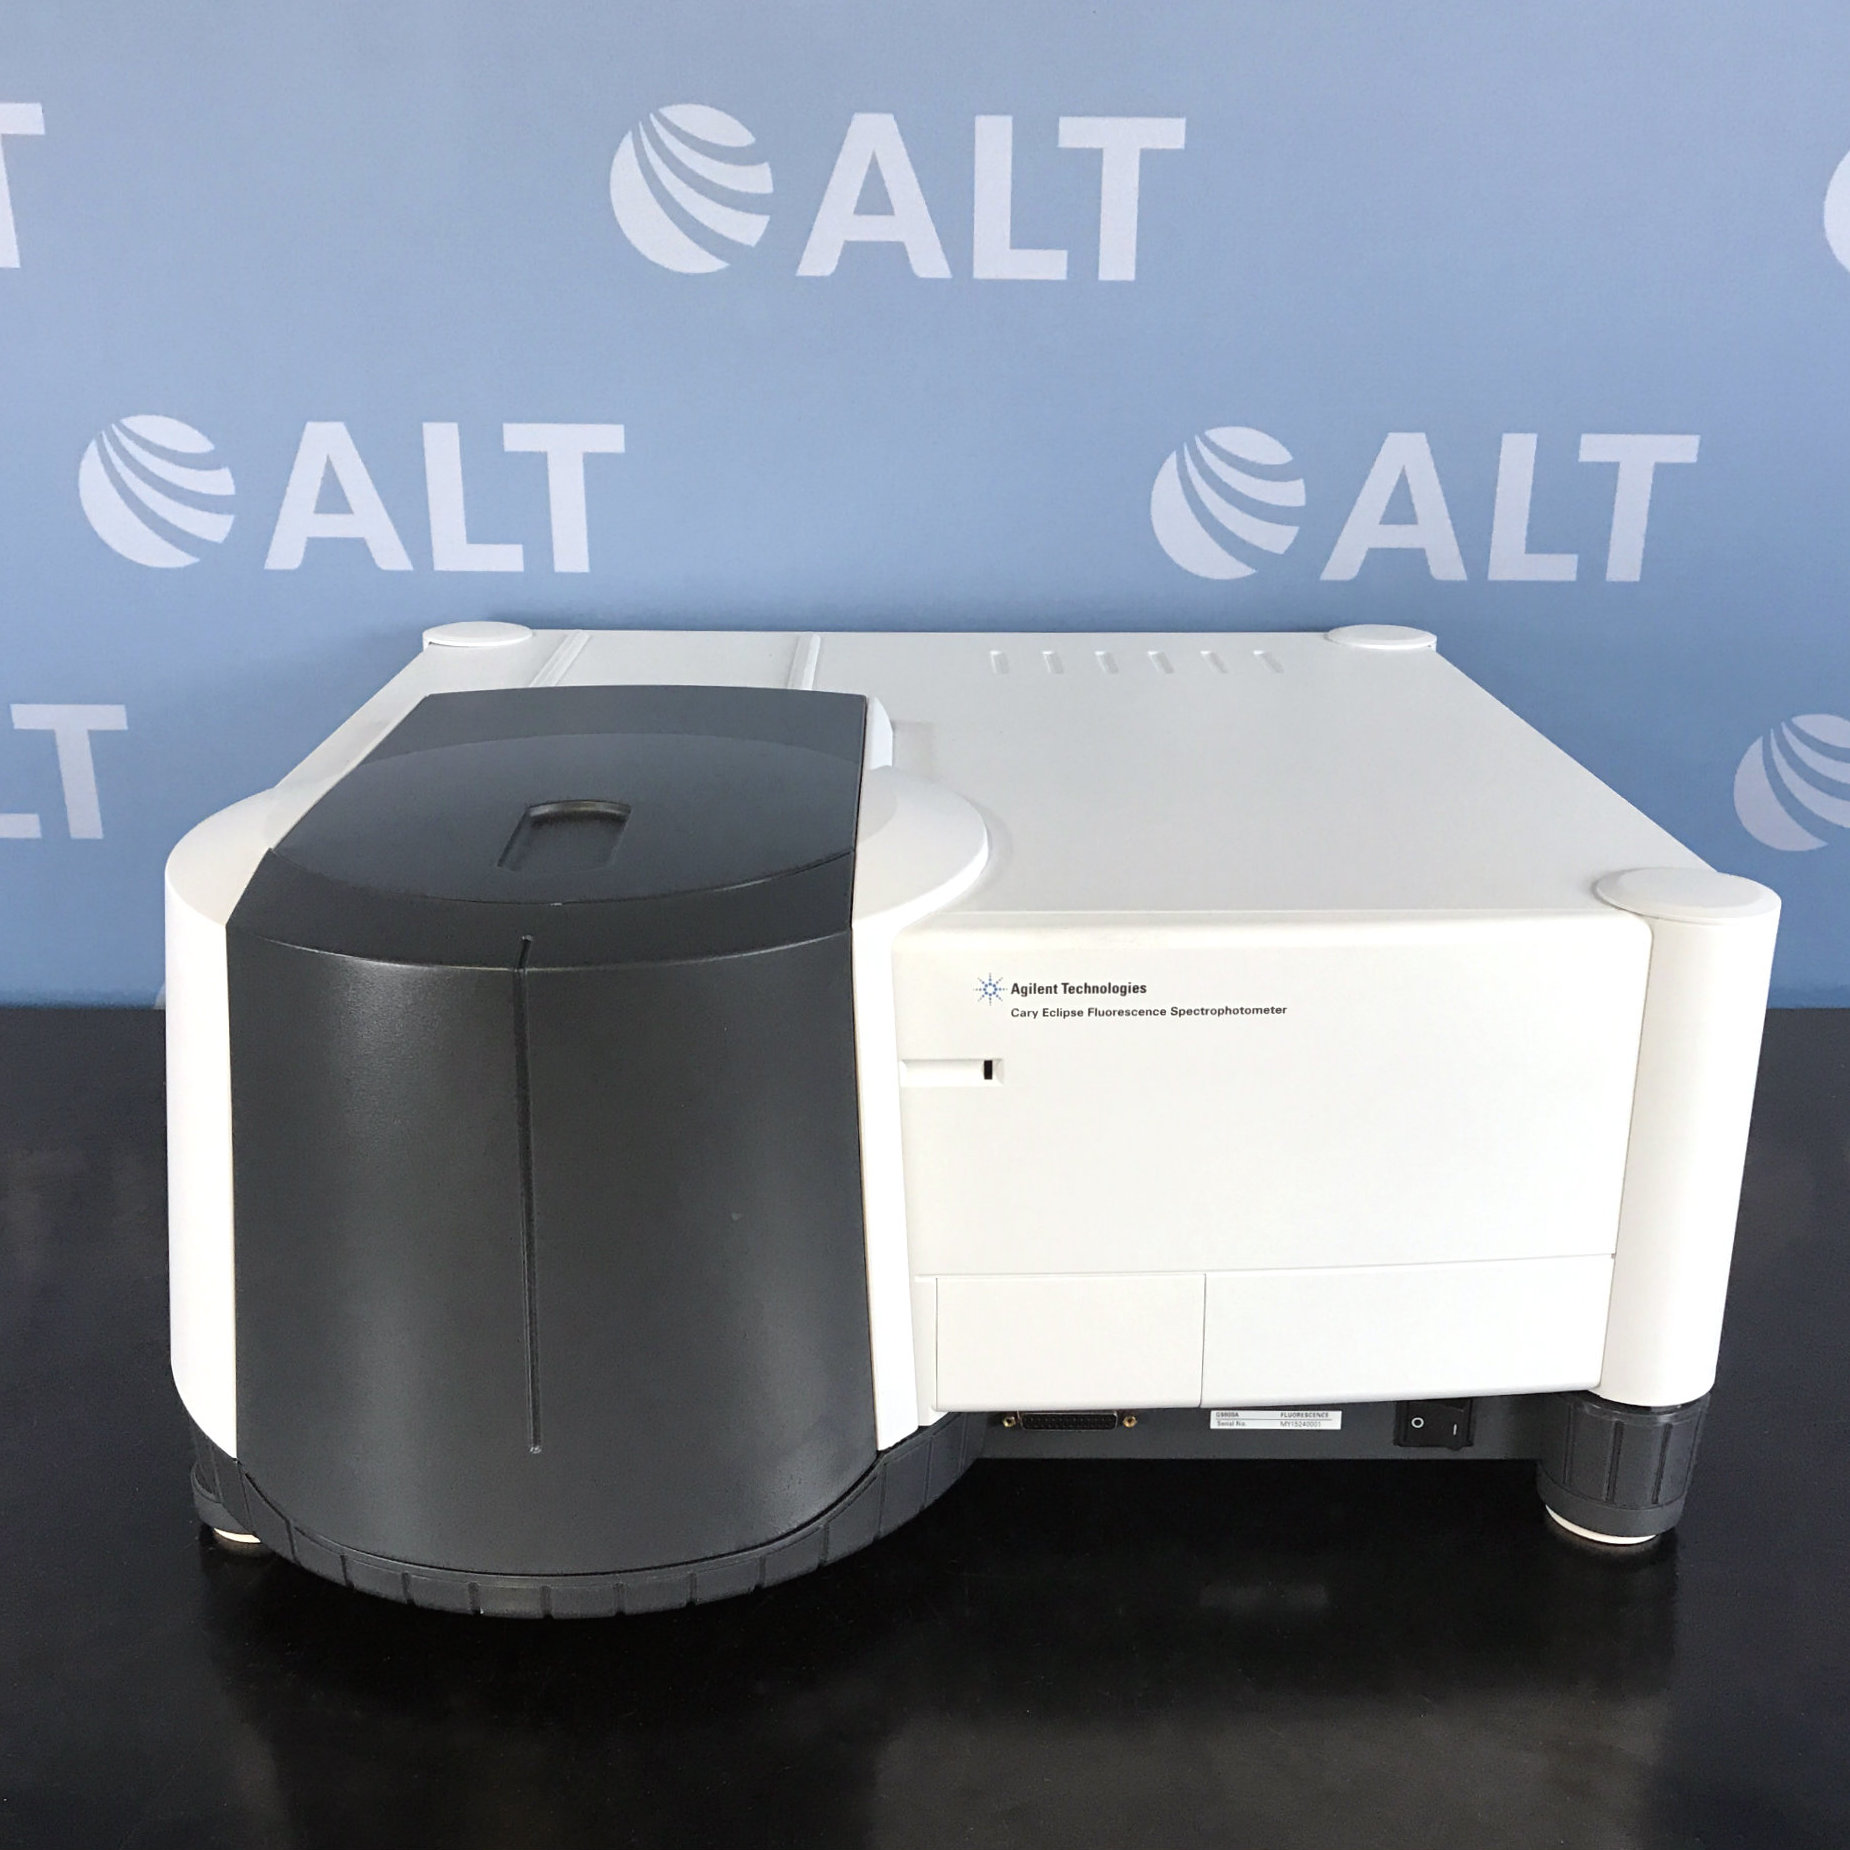 Agilent Technologies G9802AA Cary Eclipse BioMelt Bundle Image